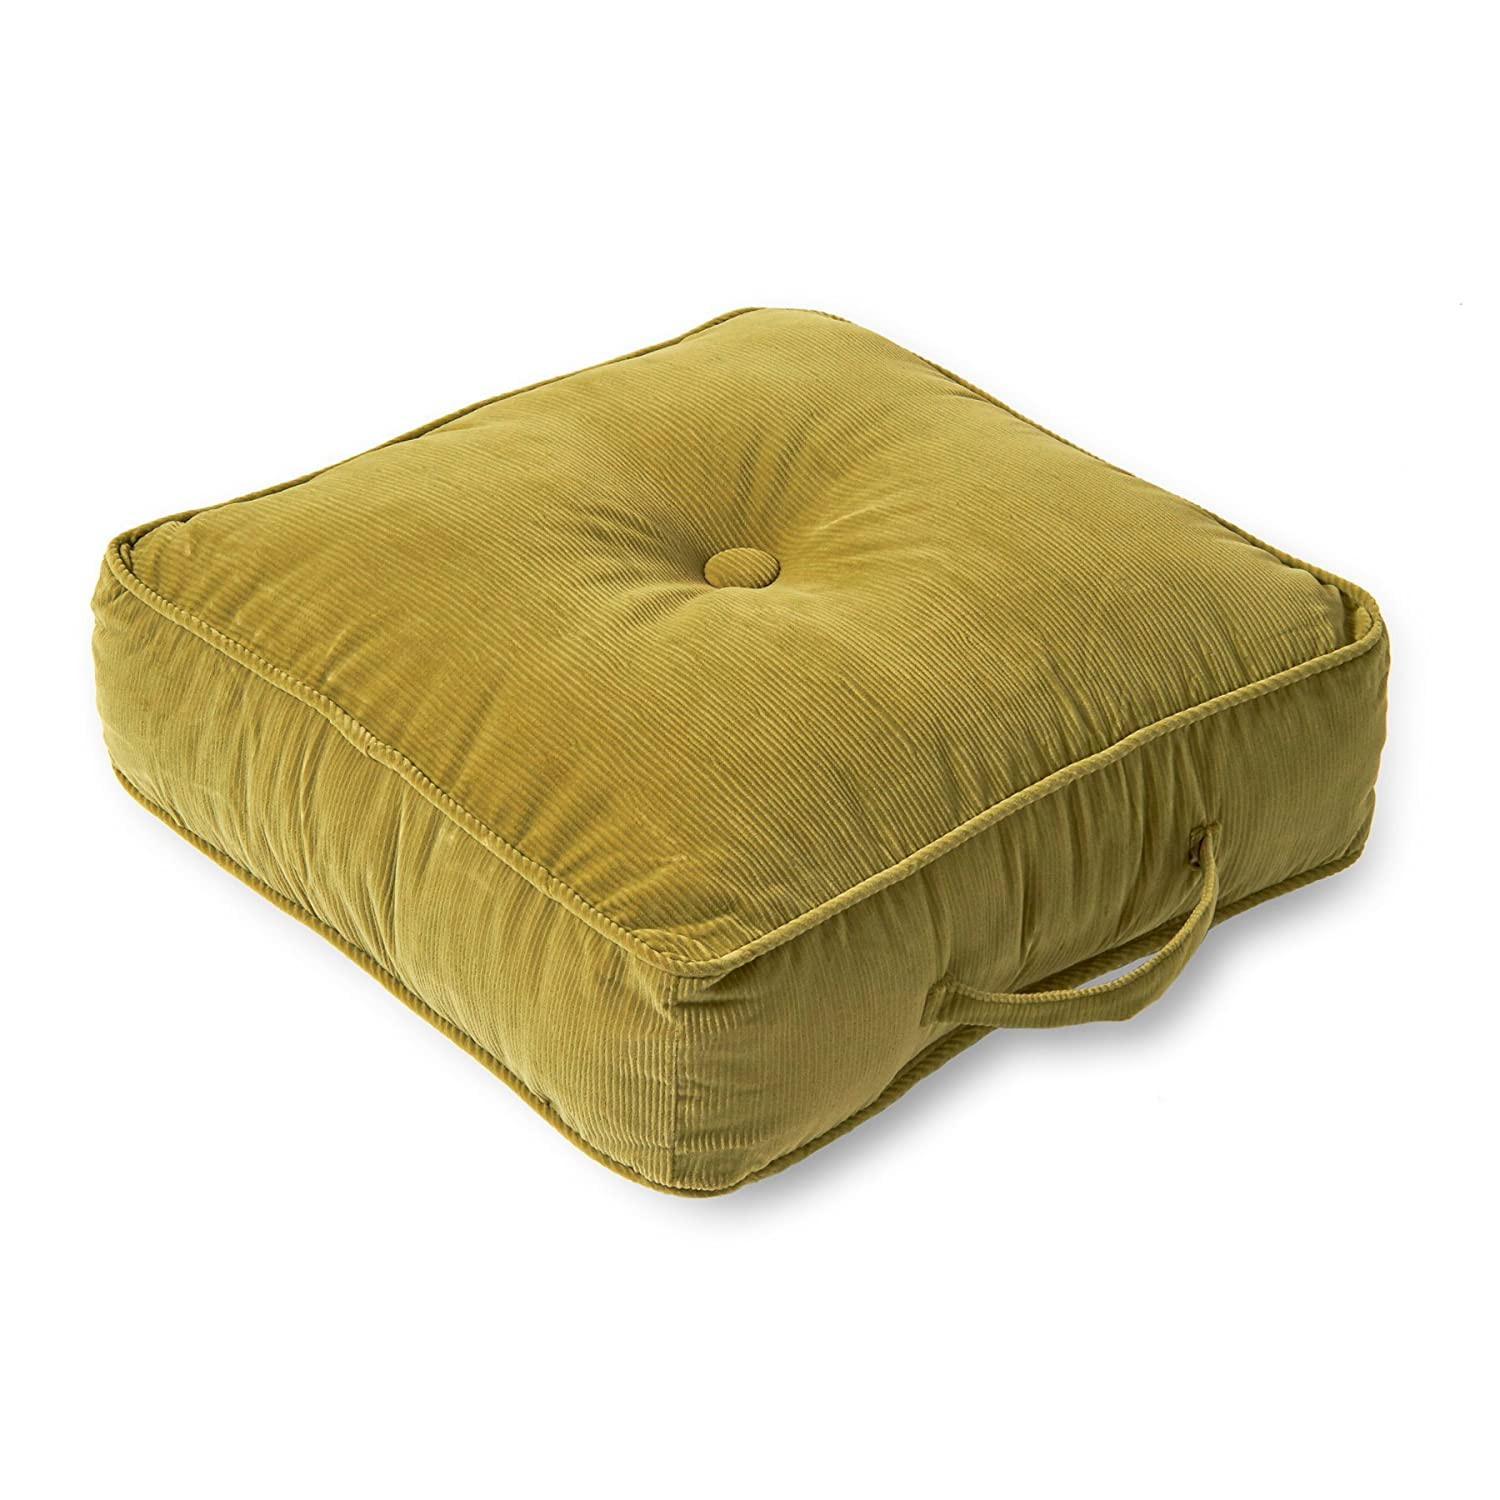 Greendale Home Fashions 20-Inch Square Floor Pillow Omaha/Amigo fabric, Bitter 5183 - Bitter